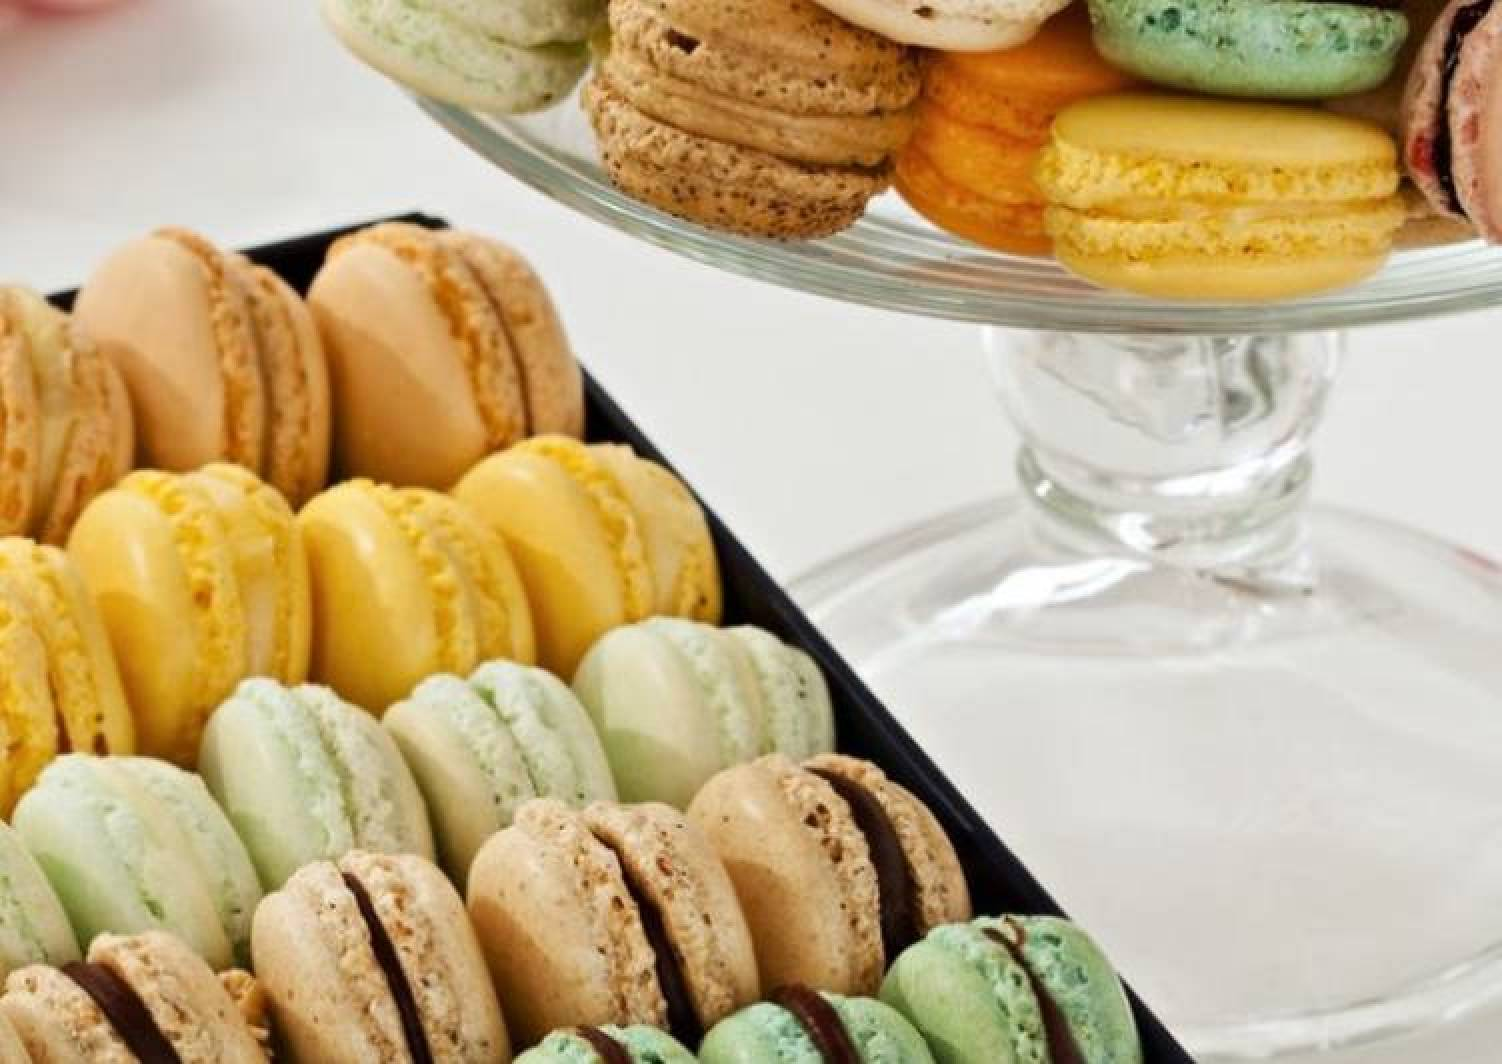 Macaroons with the Thermomix